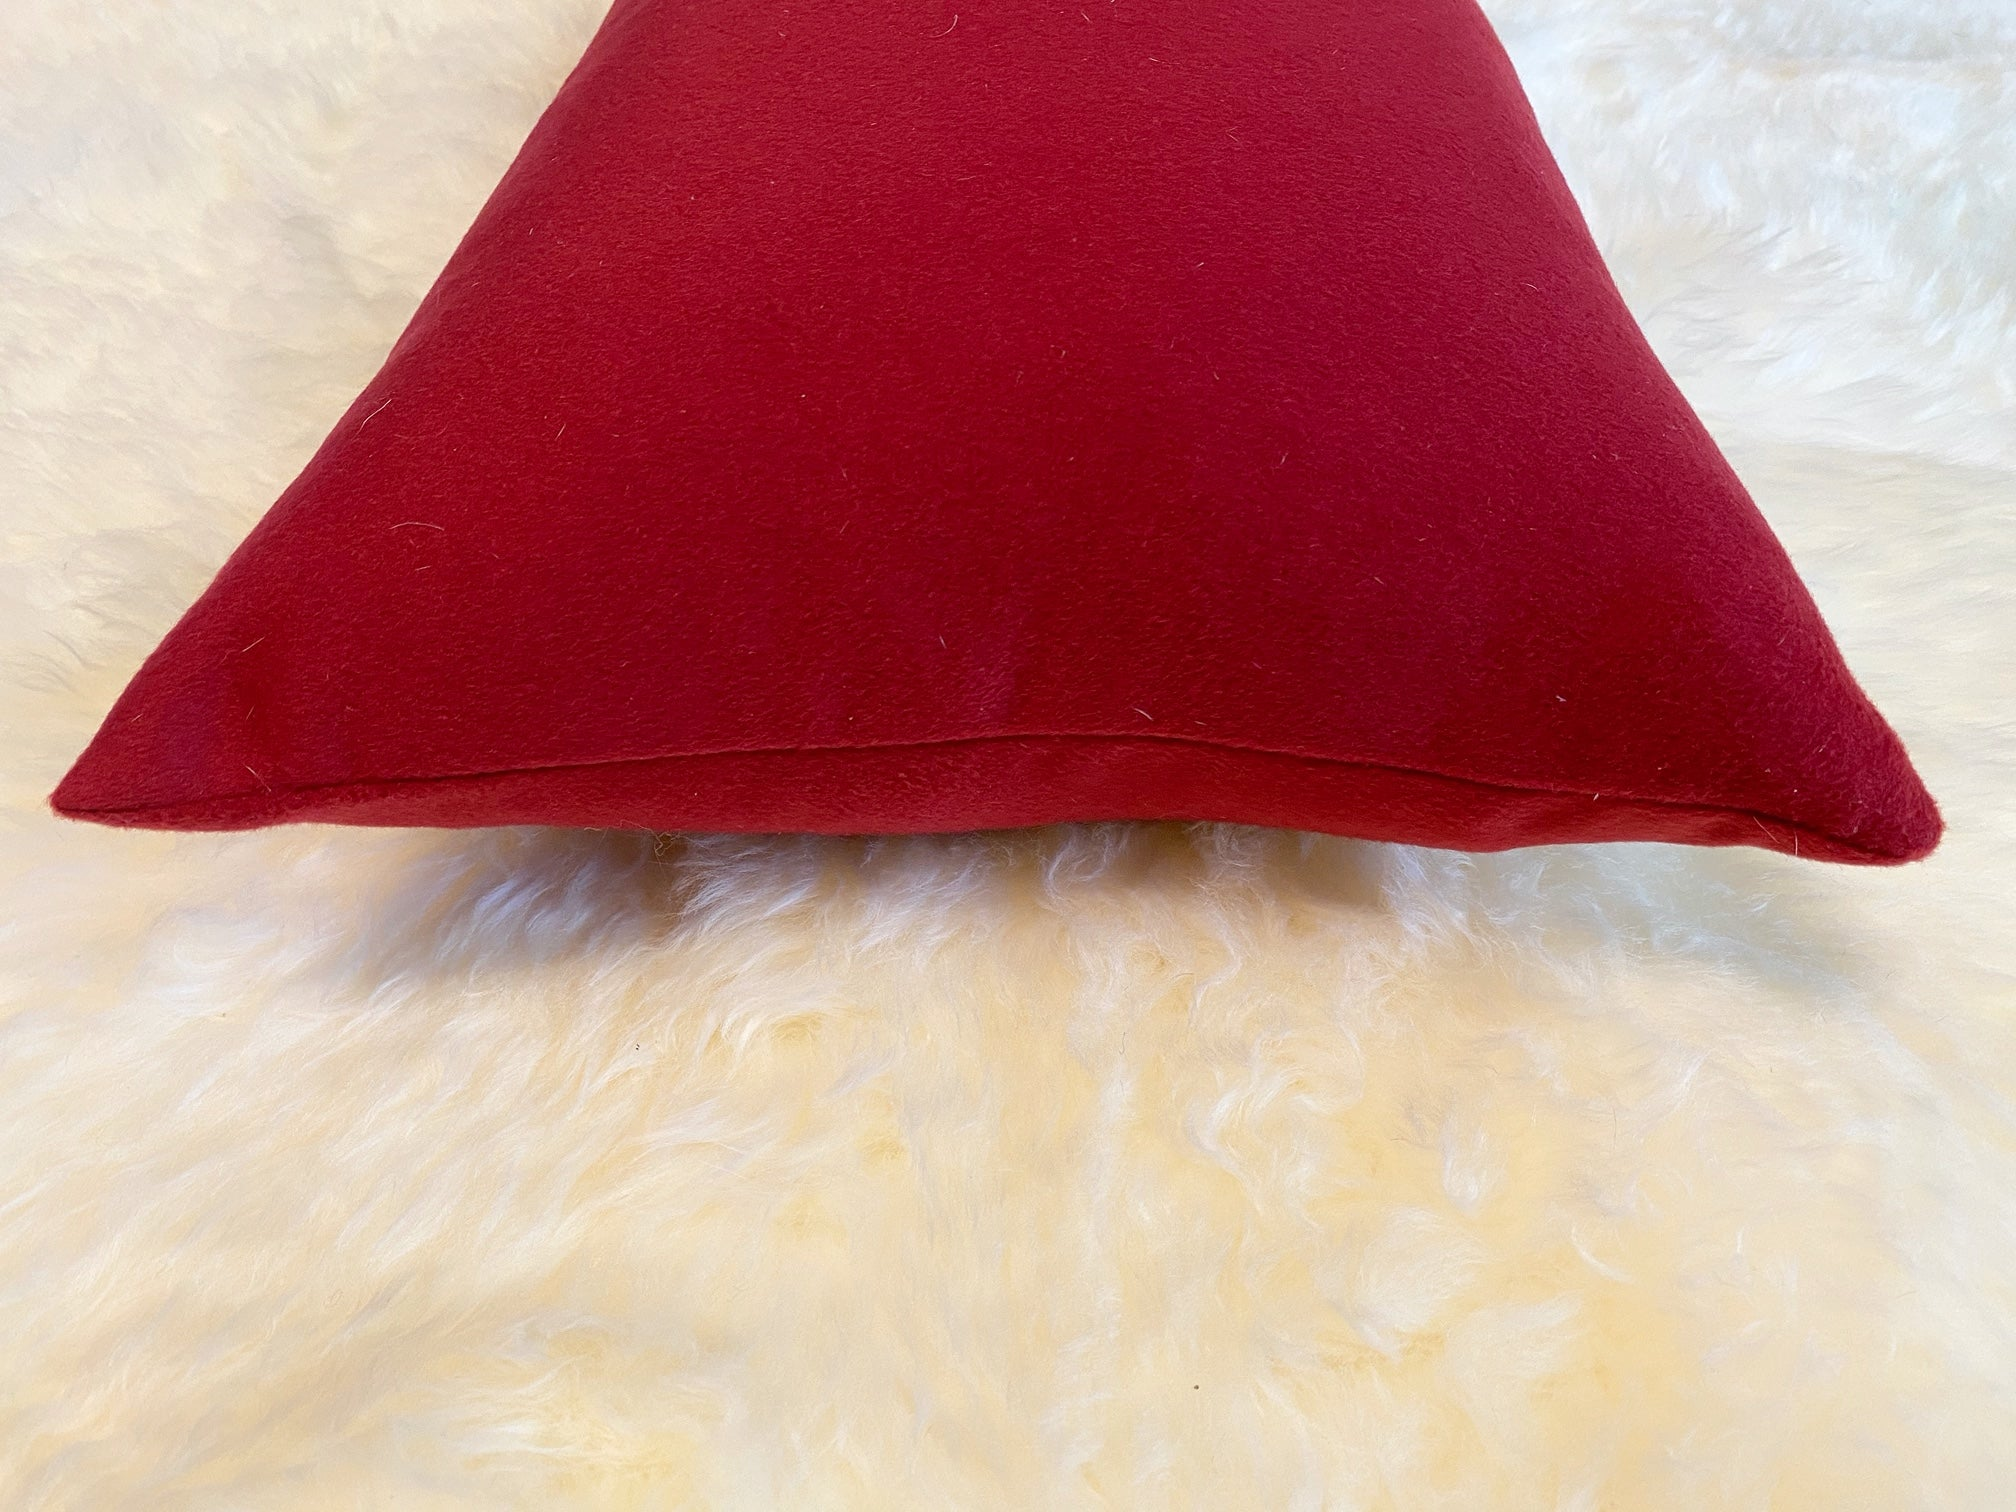 Loro Piana Red Cashmere Pillow, 21""